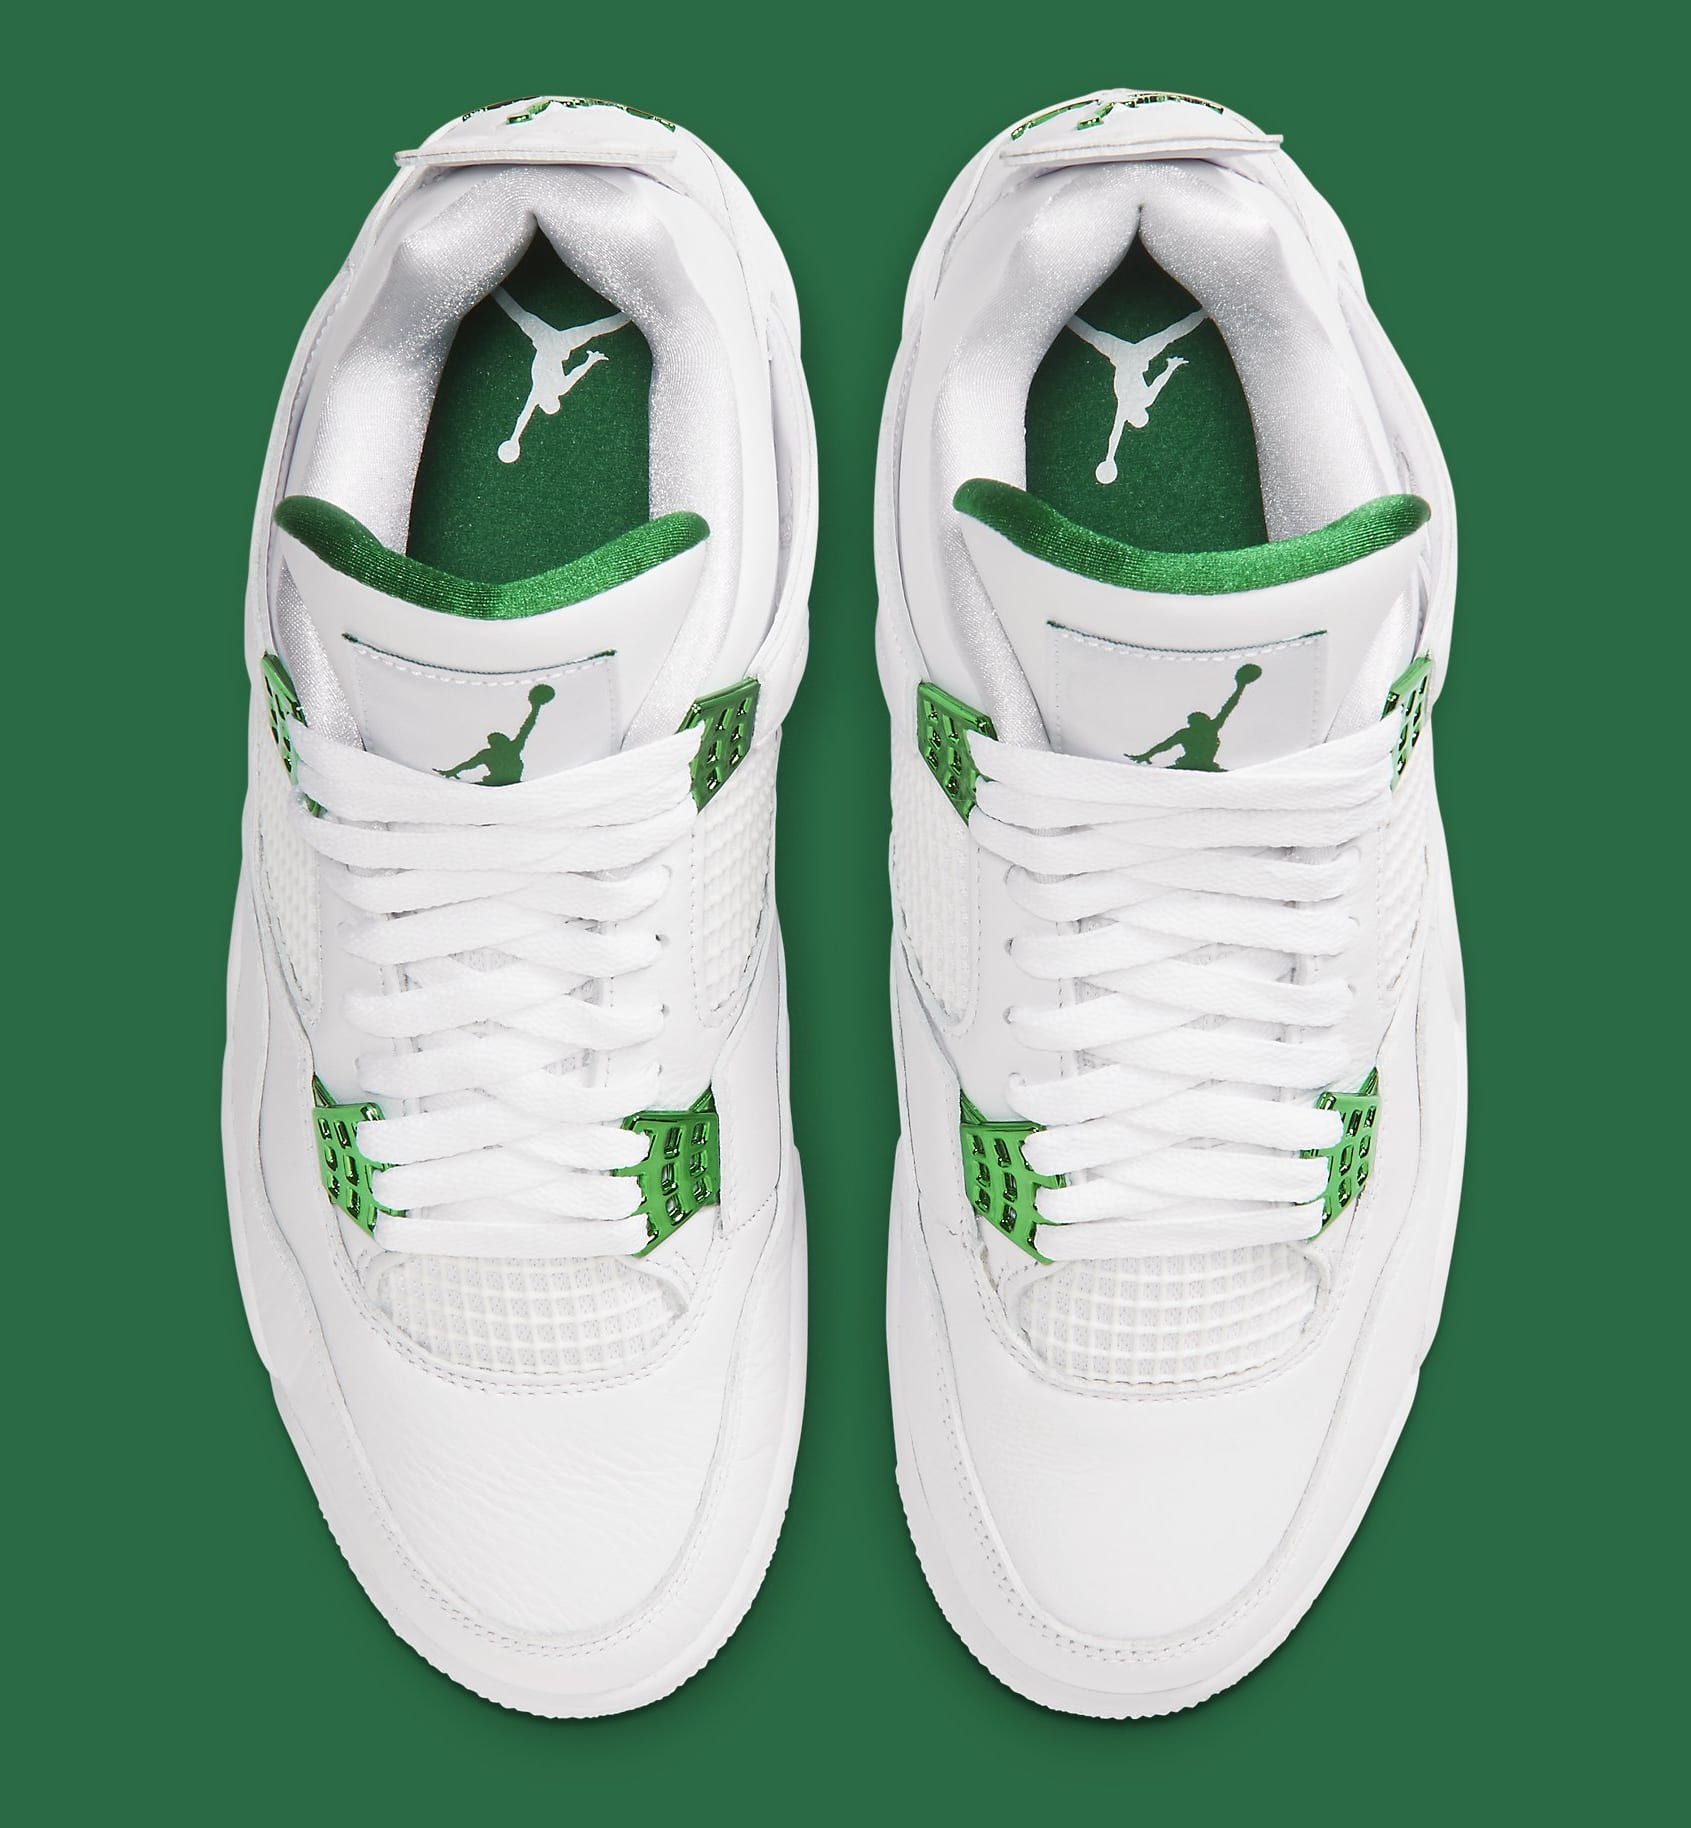 Air Jordan 4 Retro 'Green Metallic' CT8527-113 Top